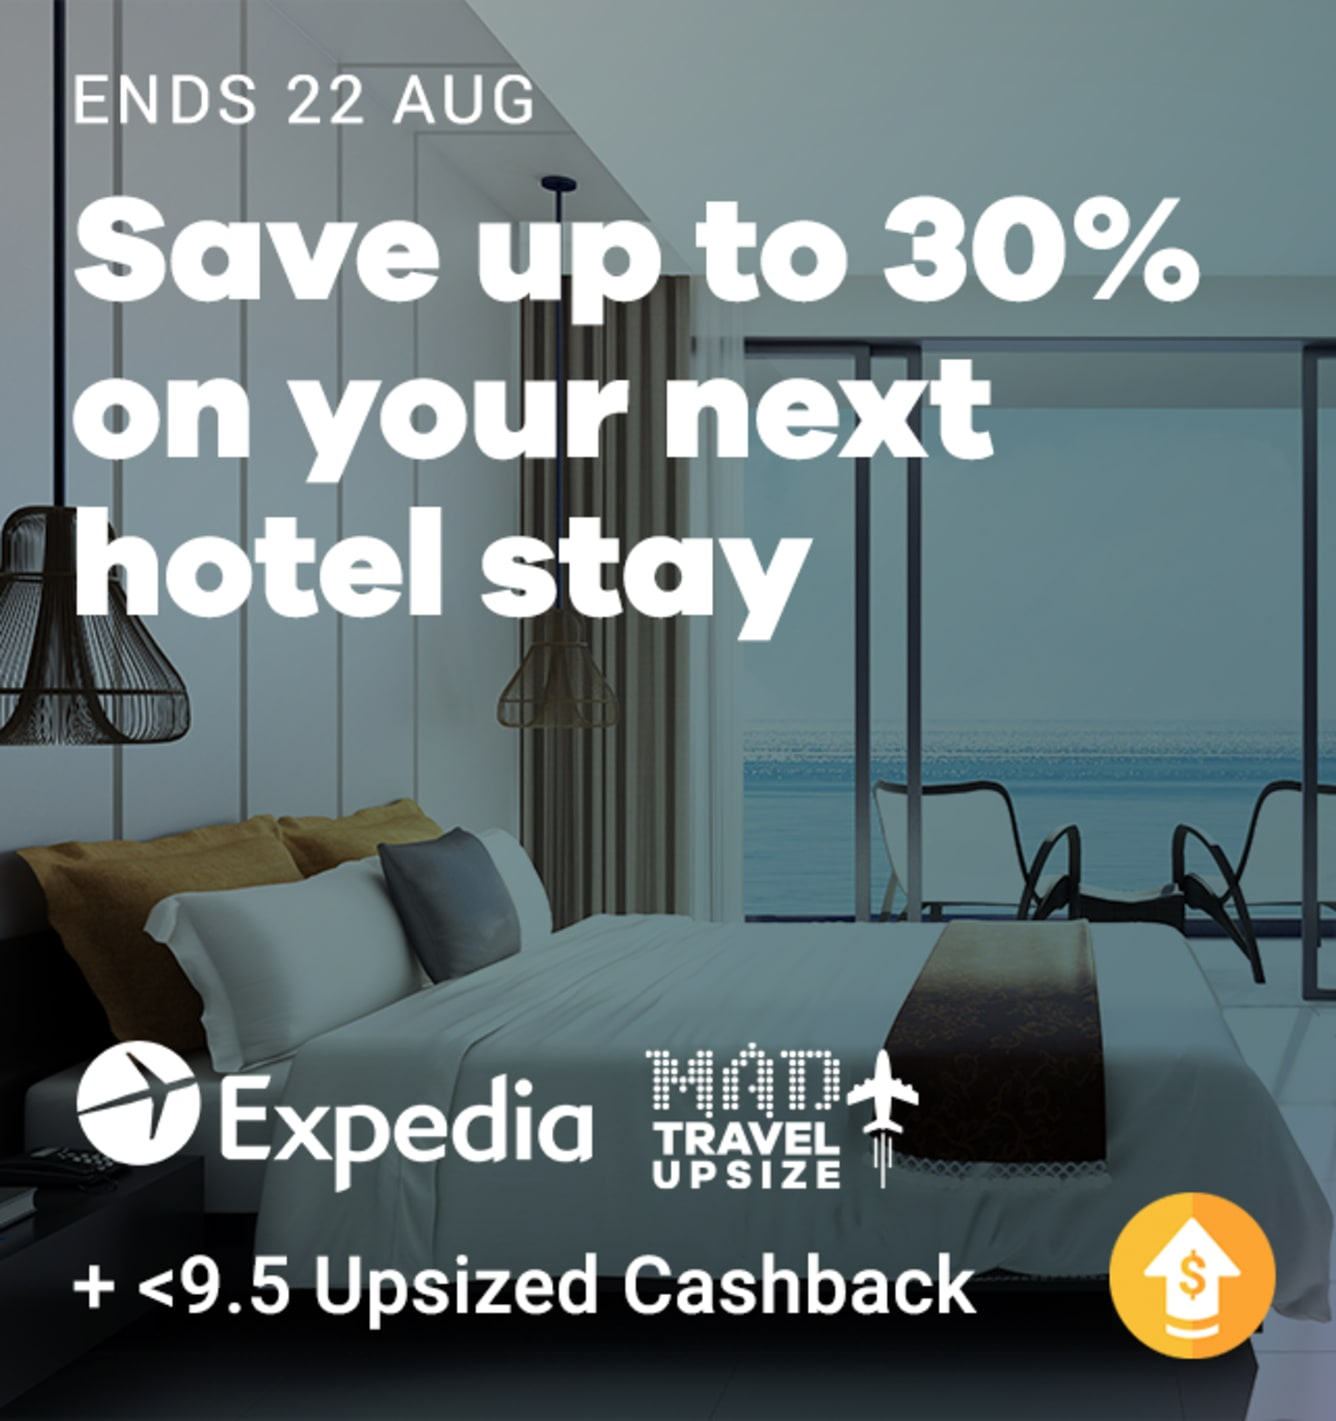 Travel Fair: Expedia: 9.5% Upsized Cashback